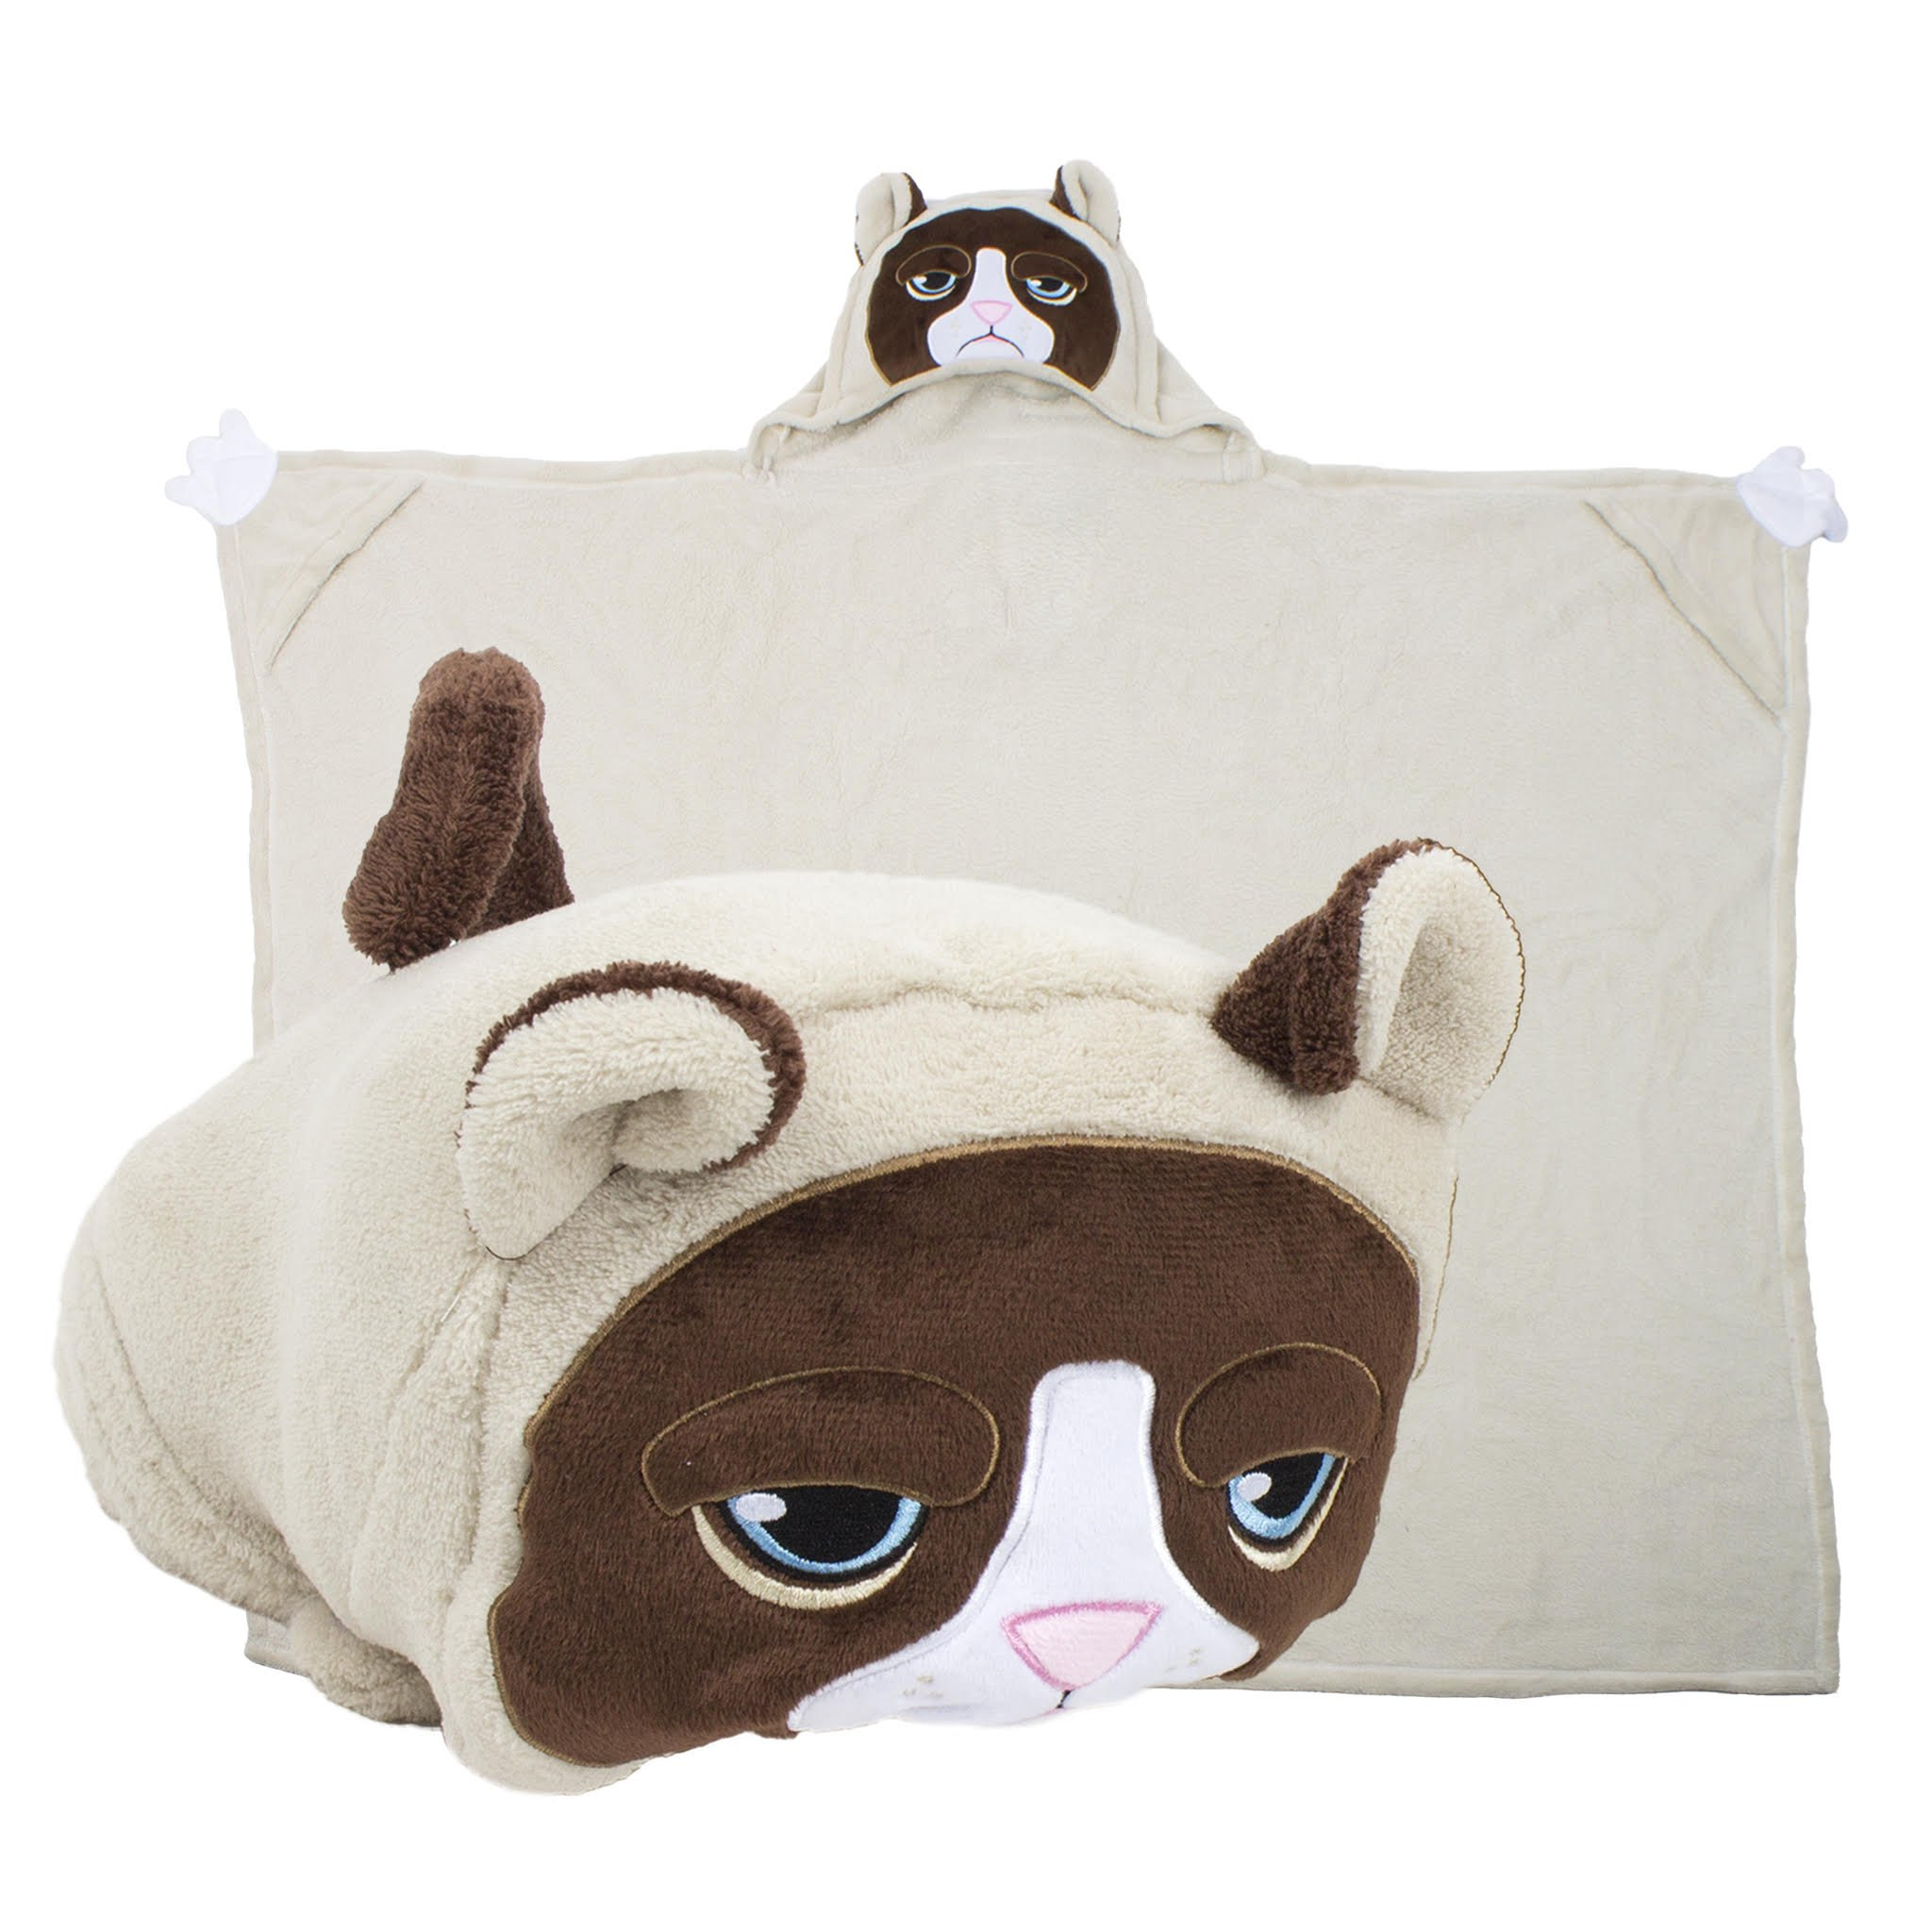 Comfy Critters Stuffed Animal Blanket – Grumpy Cat – Kids Huggable Pillow and Blanket Perfect for Pretend Play, Travel, nap time.